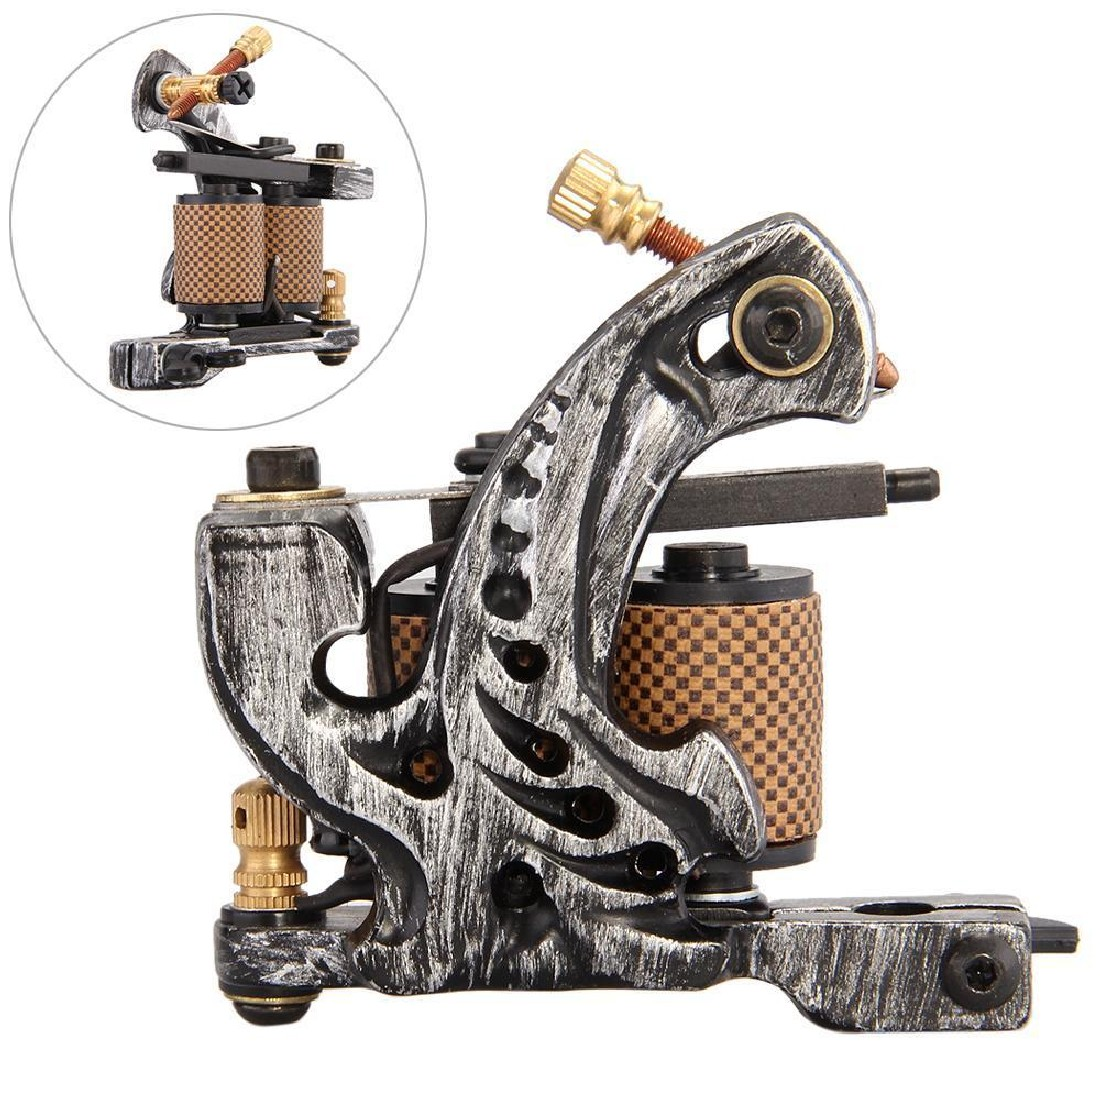 in addition  moreover Tattoo Machines   Parts   eBay in addition  as well Cheap Tattoo Gun Wrap Online   Cheap Tattoo Gun Wrap for Sale besides 1 pcs Pro Rotary Tattoo Machine Gun Strong Quiet motor supply together with tattoo guns   Health   Beauty   Page 2 likewise Discount Pro Tattoo Machines Frames   2017 Pro Tattoo Machines also Por Tattoo Guns Starter Kits Buy Cheap Tattoo Guns Starter further rotary tattoo machines for sale  new design and por tattoo gun together with Por Rotary Tattoo Machine Kits Sale Buy Cheap Rotary Tattoo. on pro tattoo guns for sale